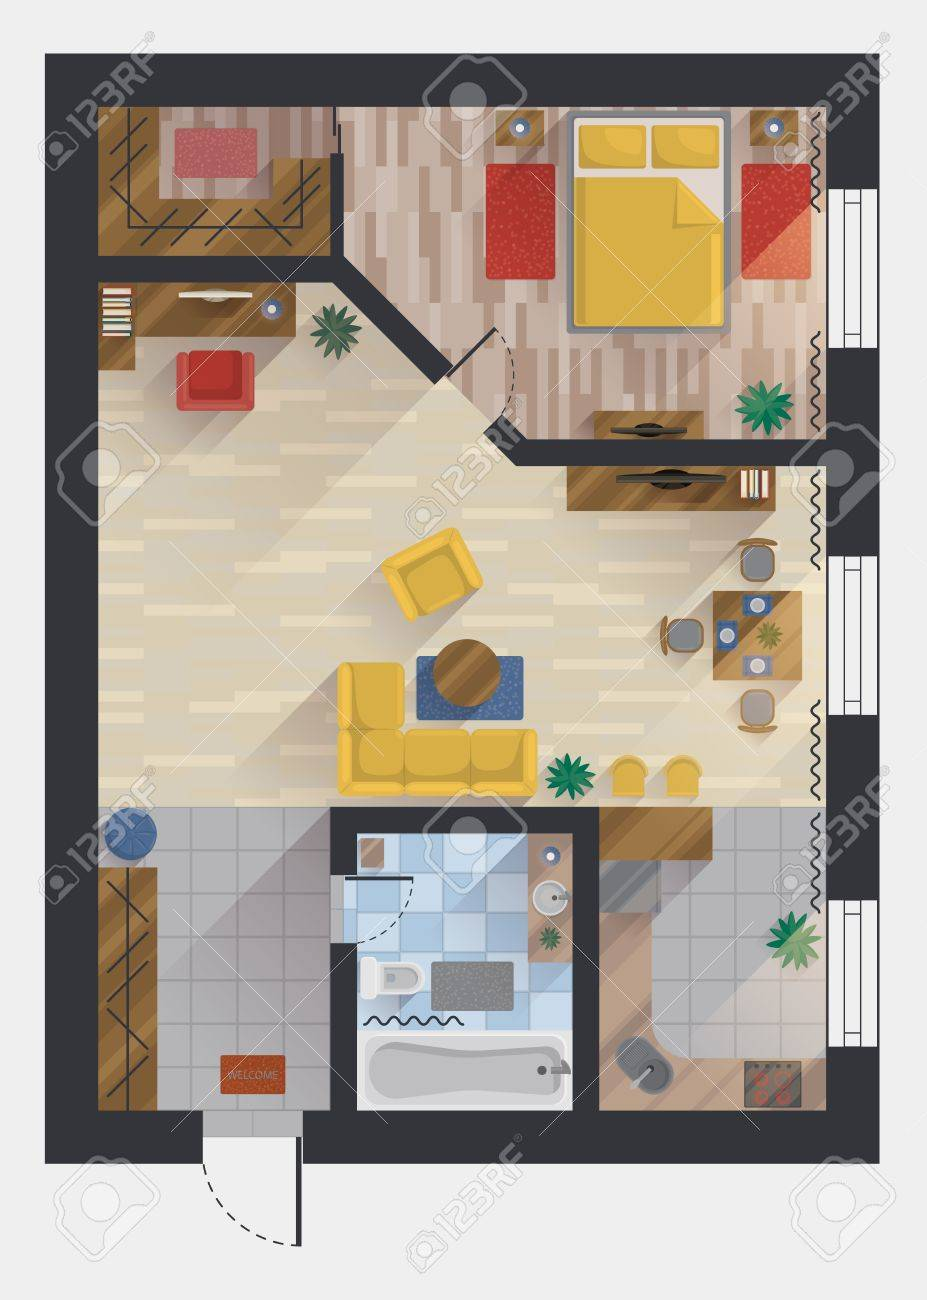 Apartment Or Flat, House Or Floor Plan Design Top View. Planning ...